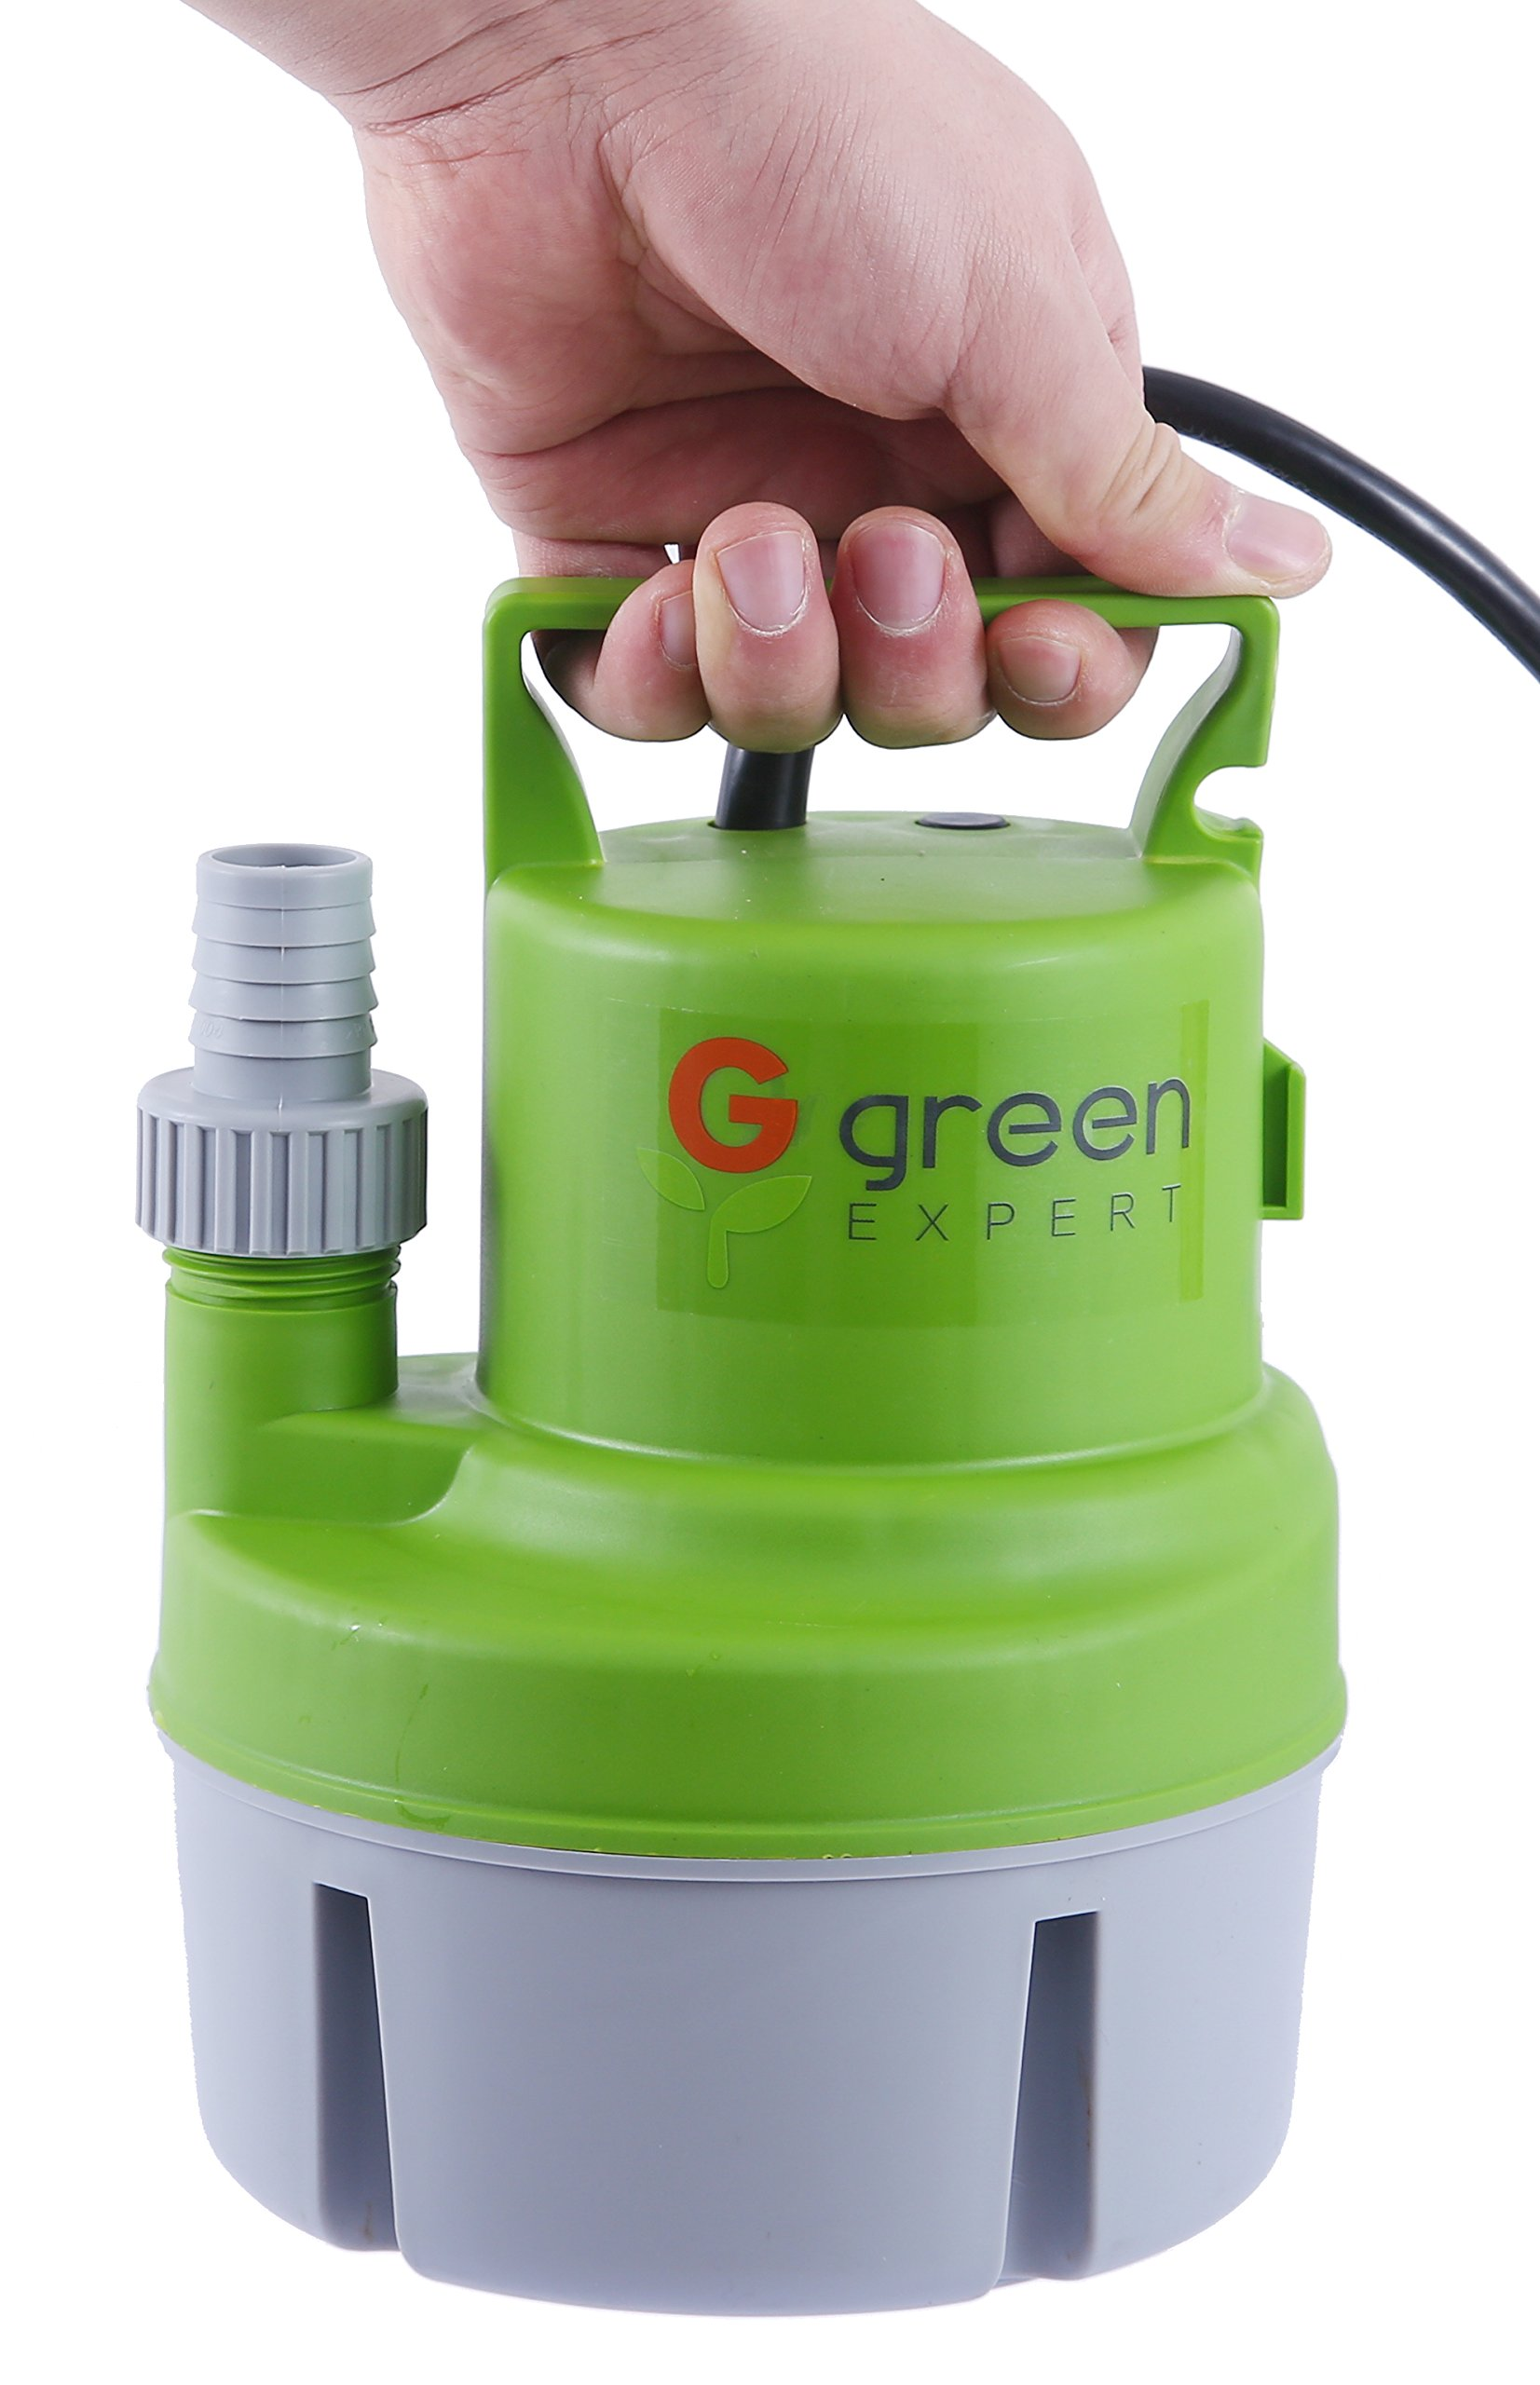 Green Expert 203617 1/6 HP Portable Submersible Utility Pump with 1056 GPH Flow Efficiently for Water Removal Basement Flood Drainage Pump with 3/4'' Adaptor Available for Standard Garden hose by G green EXPERT (Image #4)